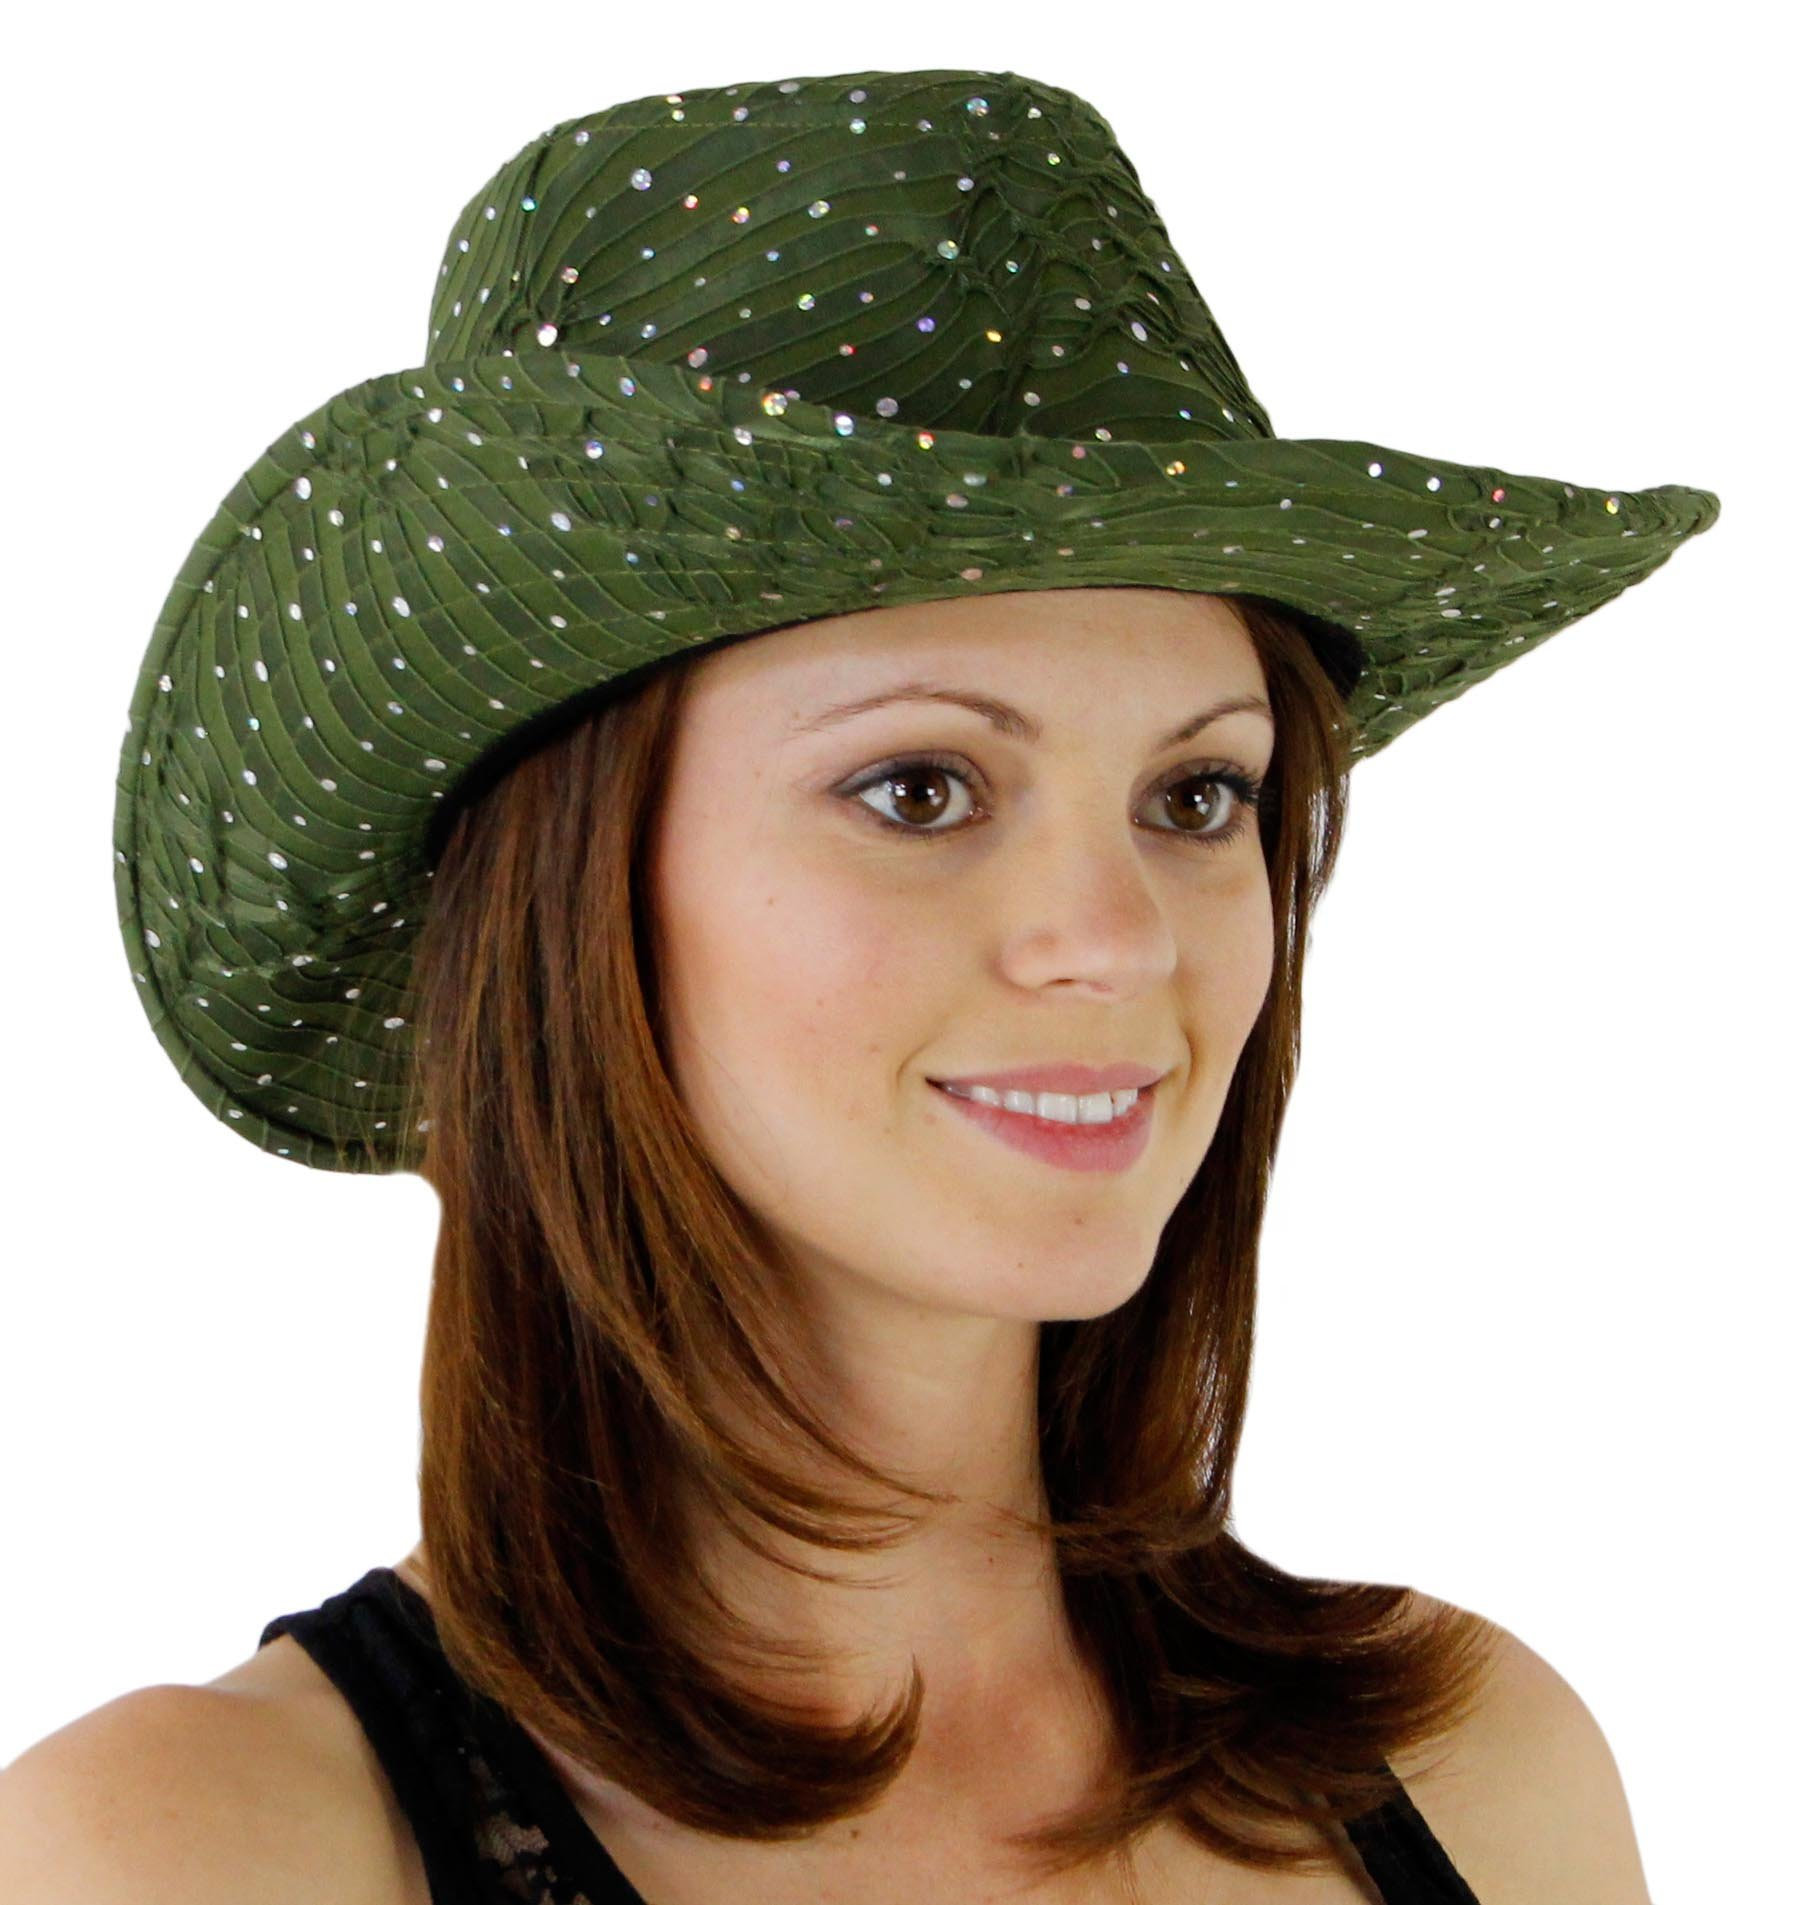 Glitter Sequin Trim Cowboy Hat Olive Green One Size